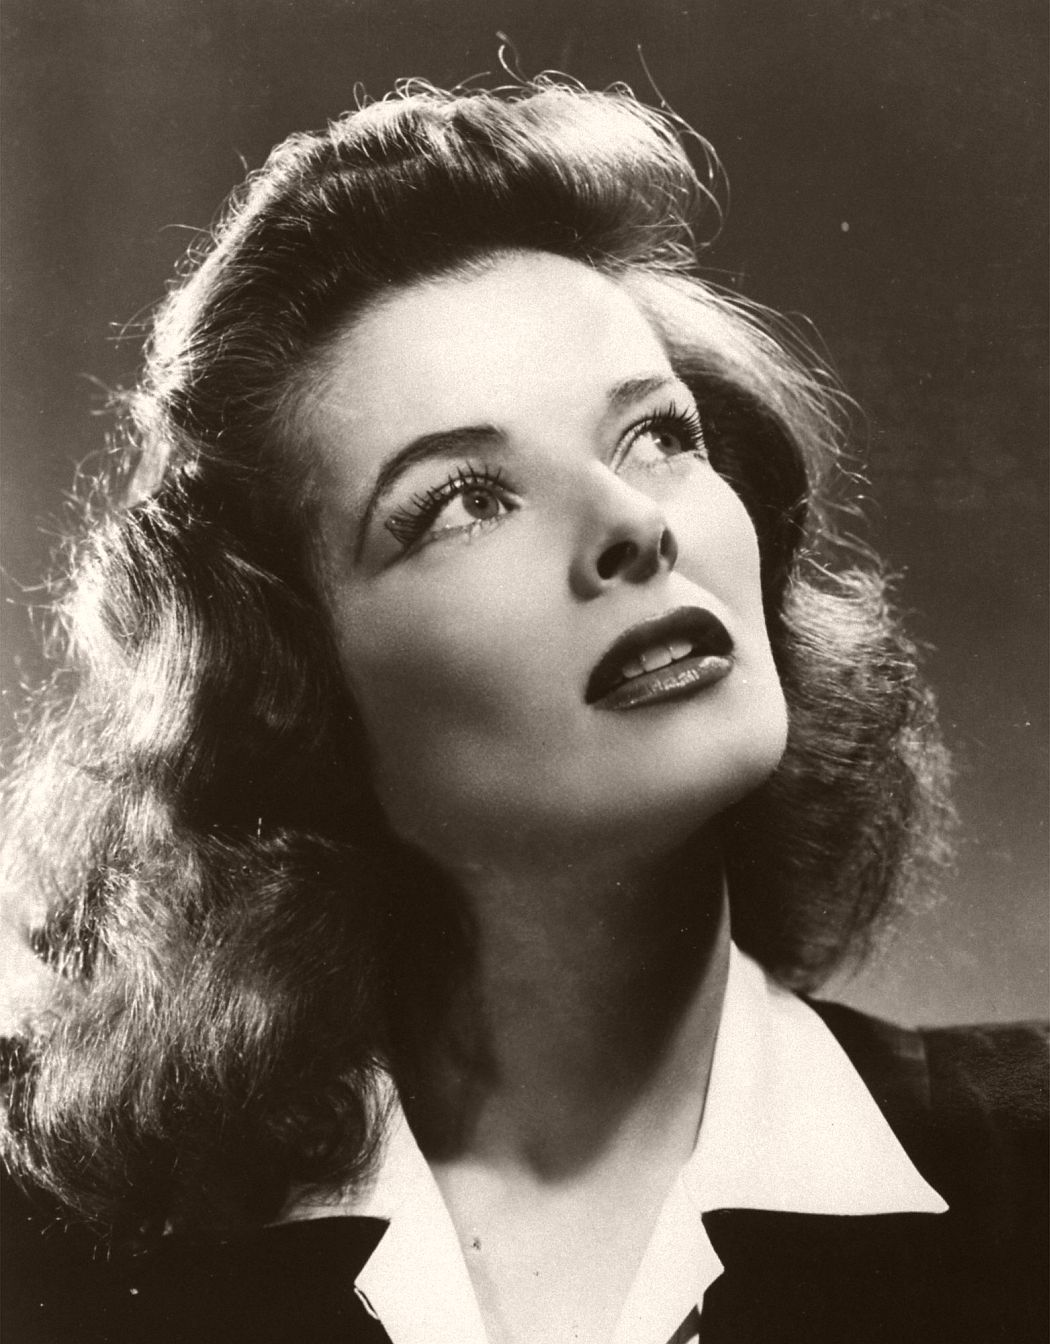 Few women have caused lasting influence on fashion as much as Katharine Hepburn. A champion of the menswear trend, Hepburn is perhaps one of the people to thank for the wide legged trousers and shirts which are still on trend today. In 1986, Hepburn's influence was recognised by the Council of Fashion Designers of America, who awarded her with a lifetime achievement award. (AP Photo/File)